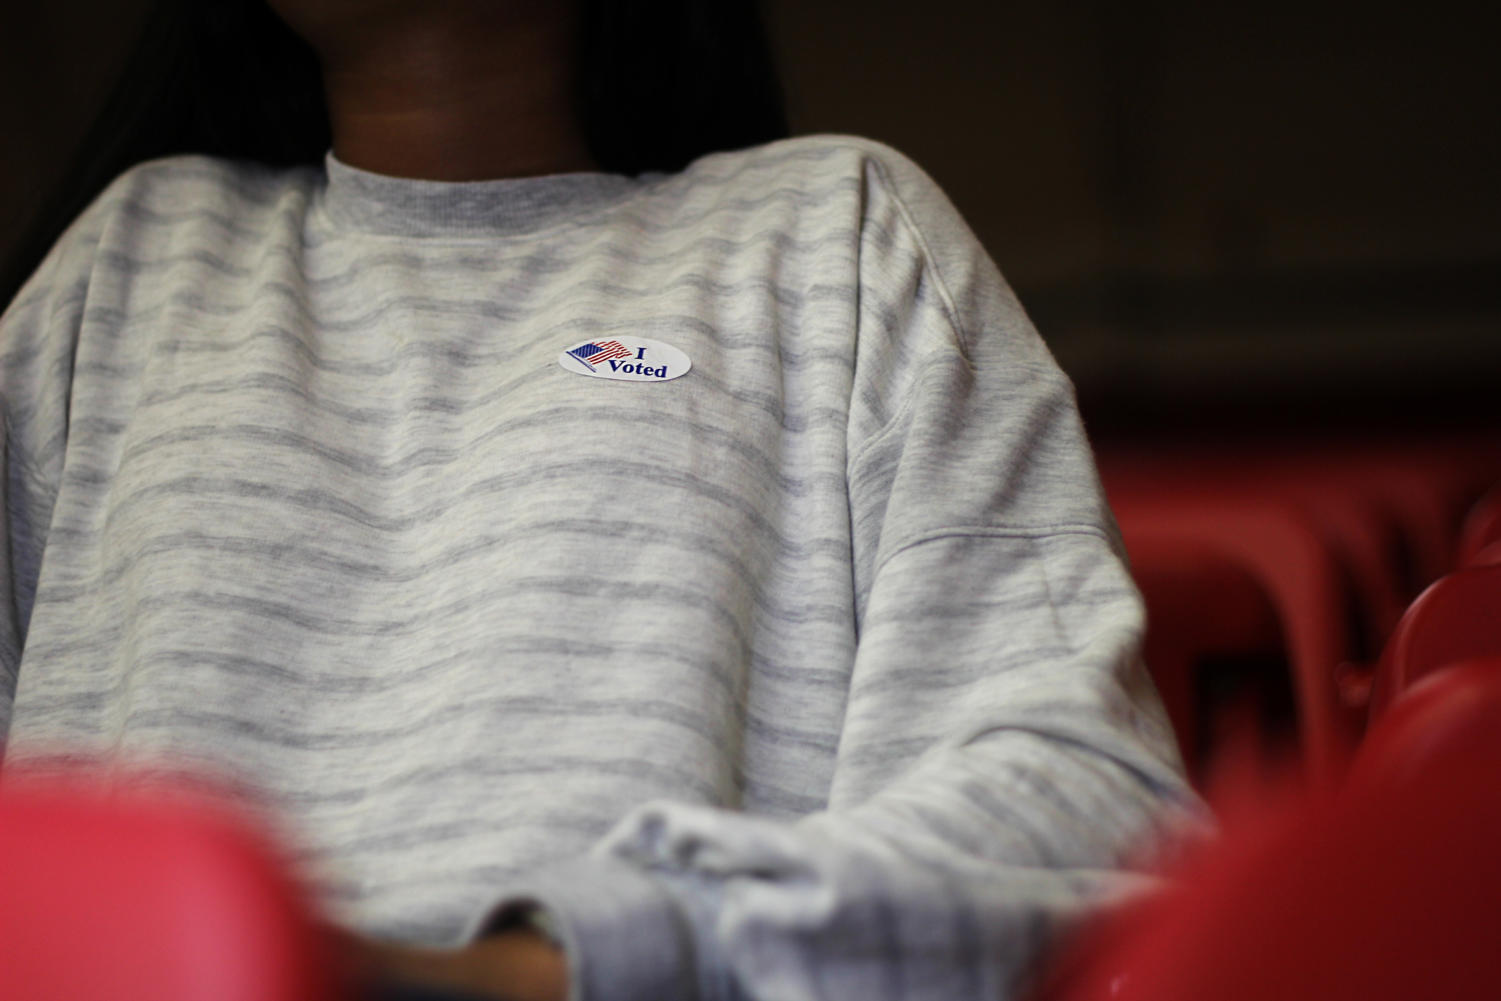 Early voting began Monday, Oct. 22.